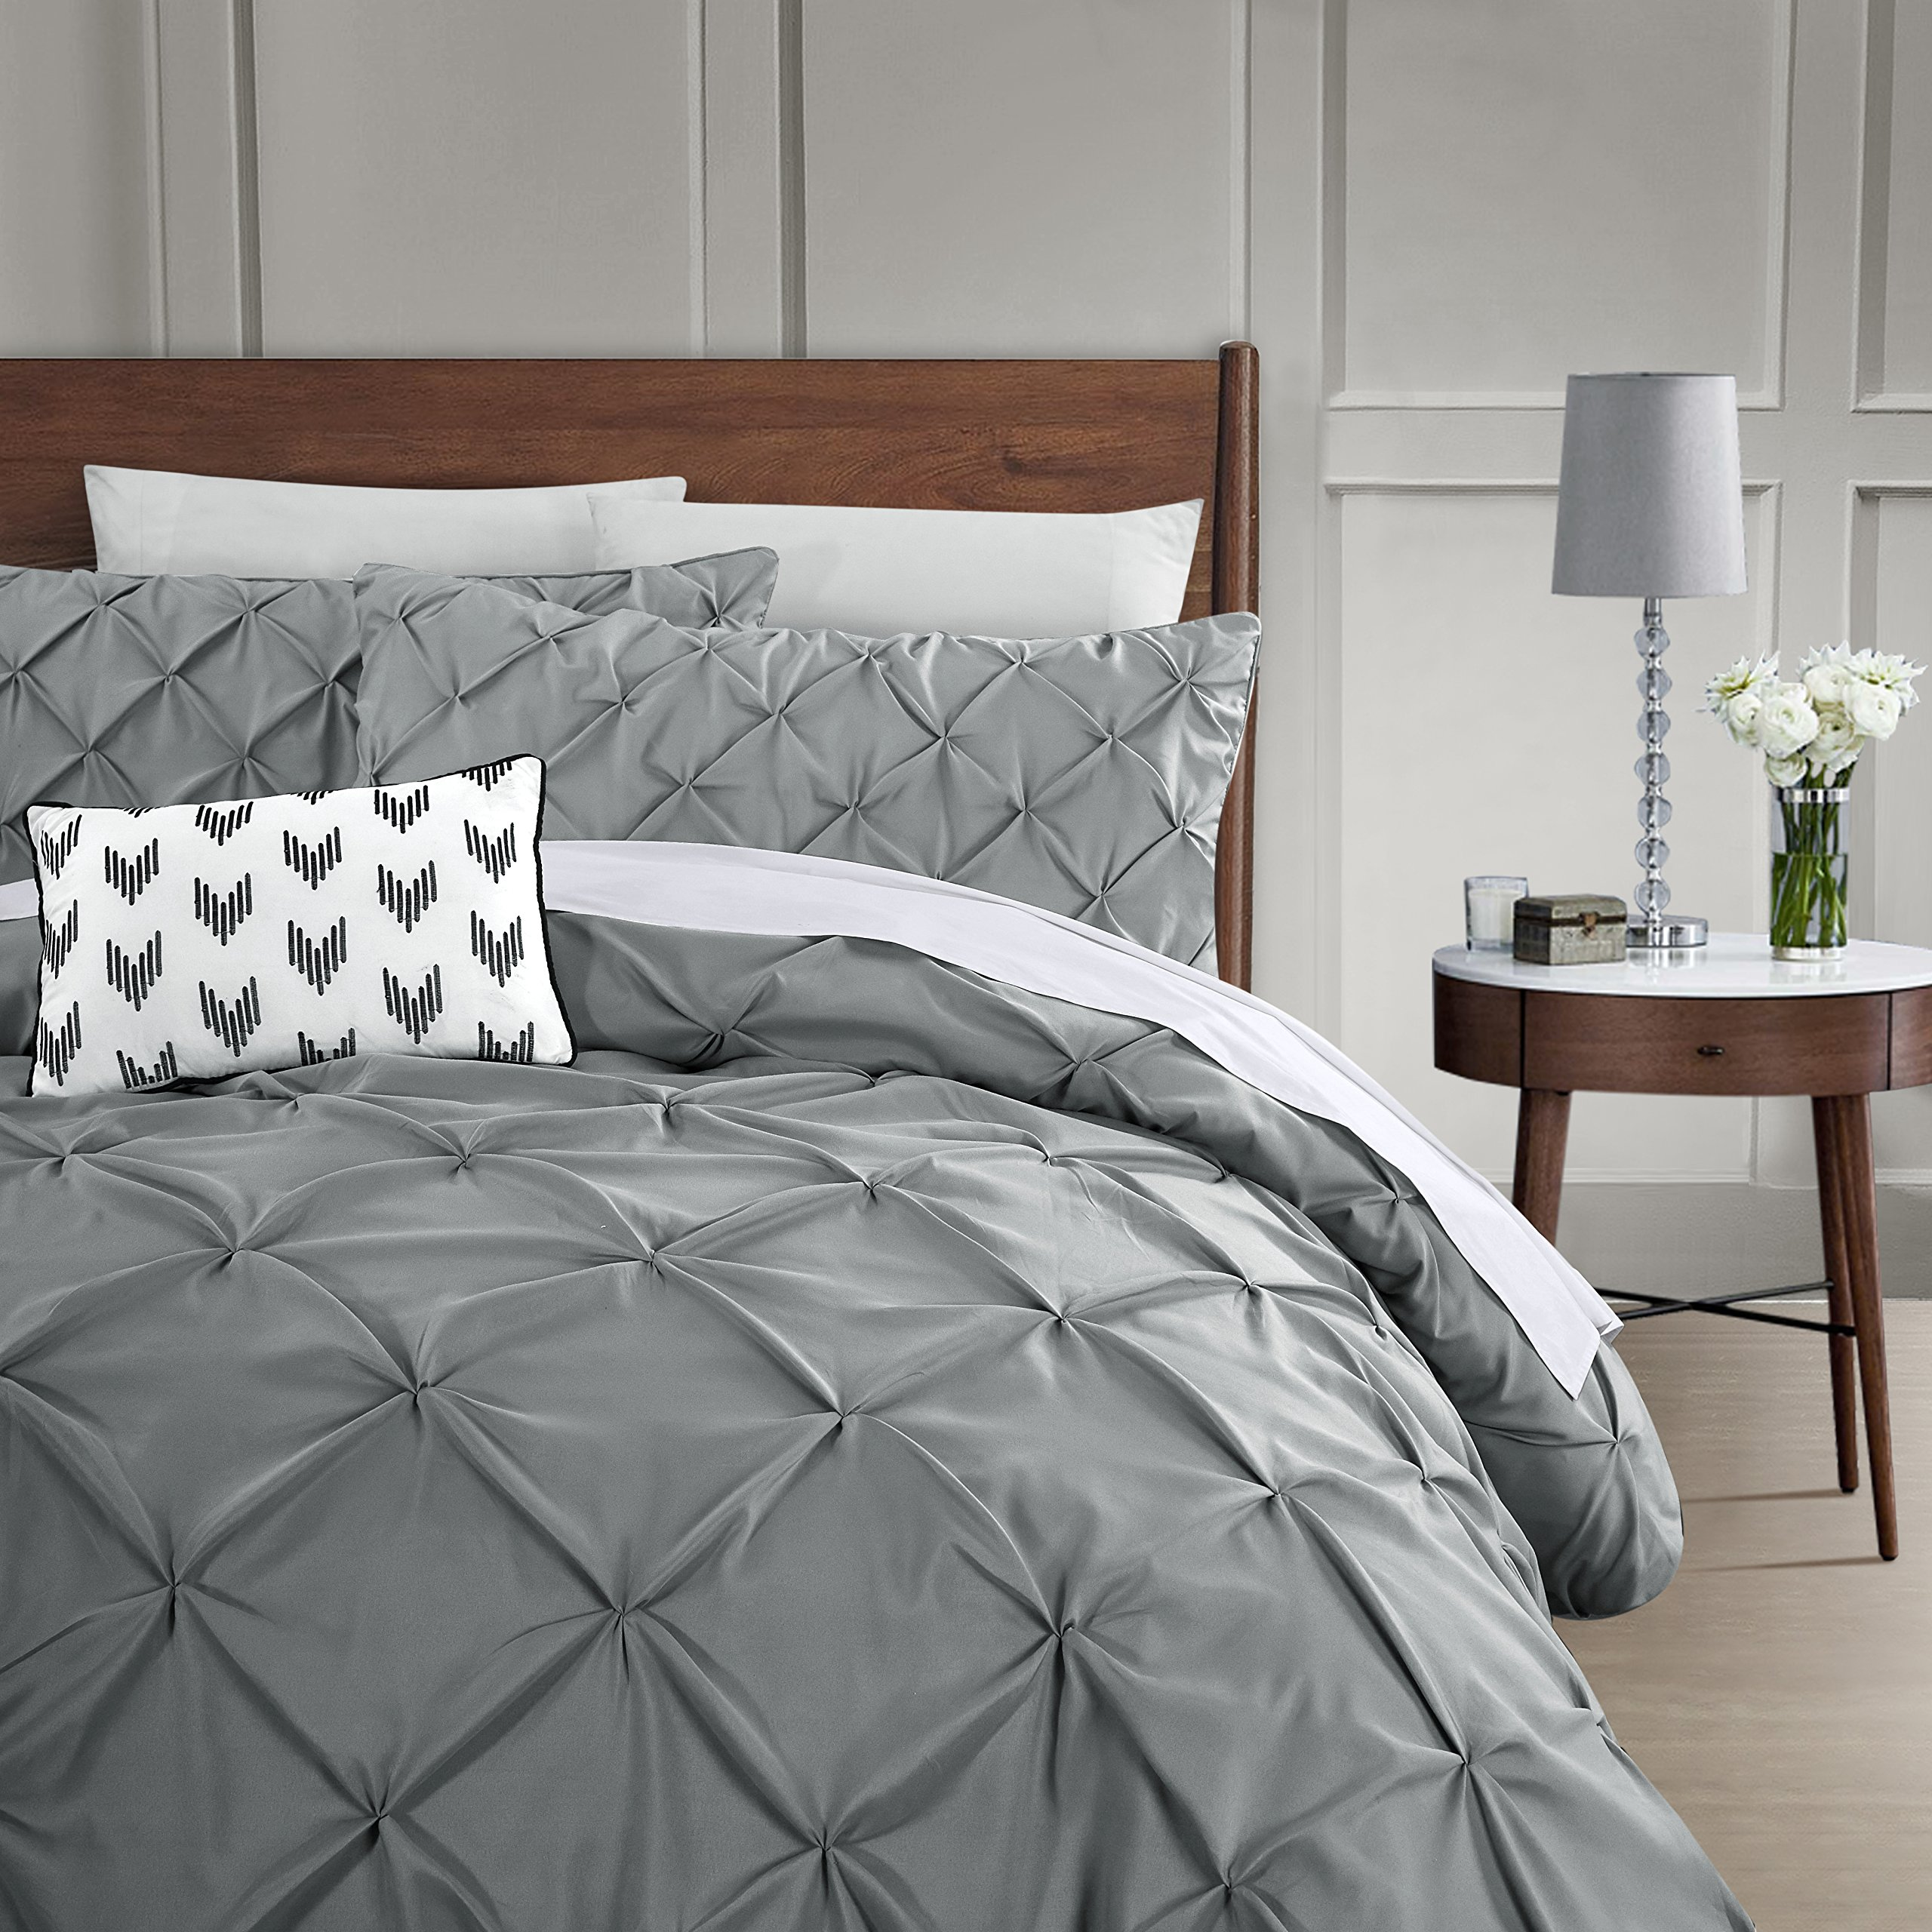 HOME HUG TEXTILES 3 Piece Luxurious Pinch Pleat Decorative Pintuck Duvet Cover Set - Hypoallergenic - 1800TC Polyester Bedding Set with Zipper Closure - Queen/Grey